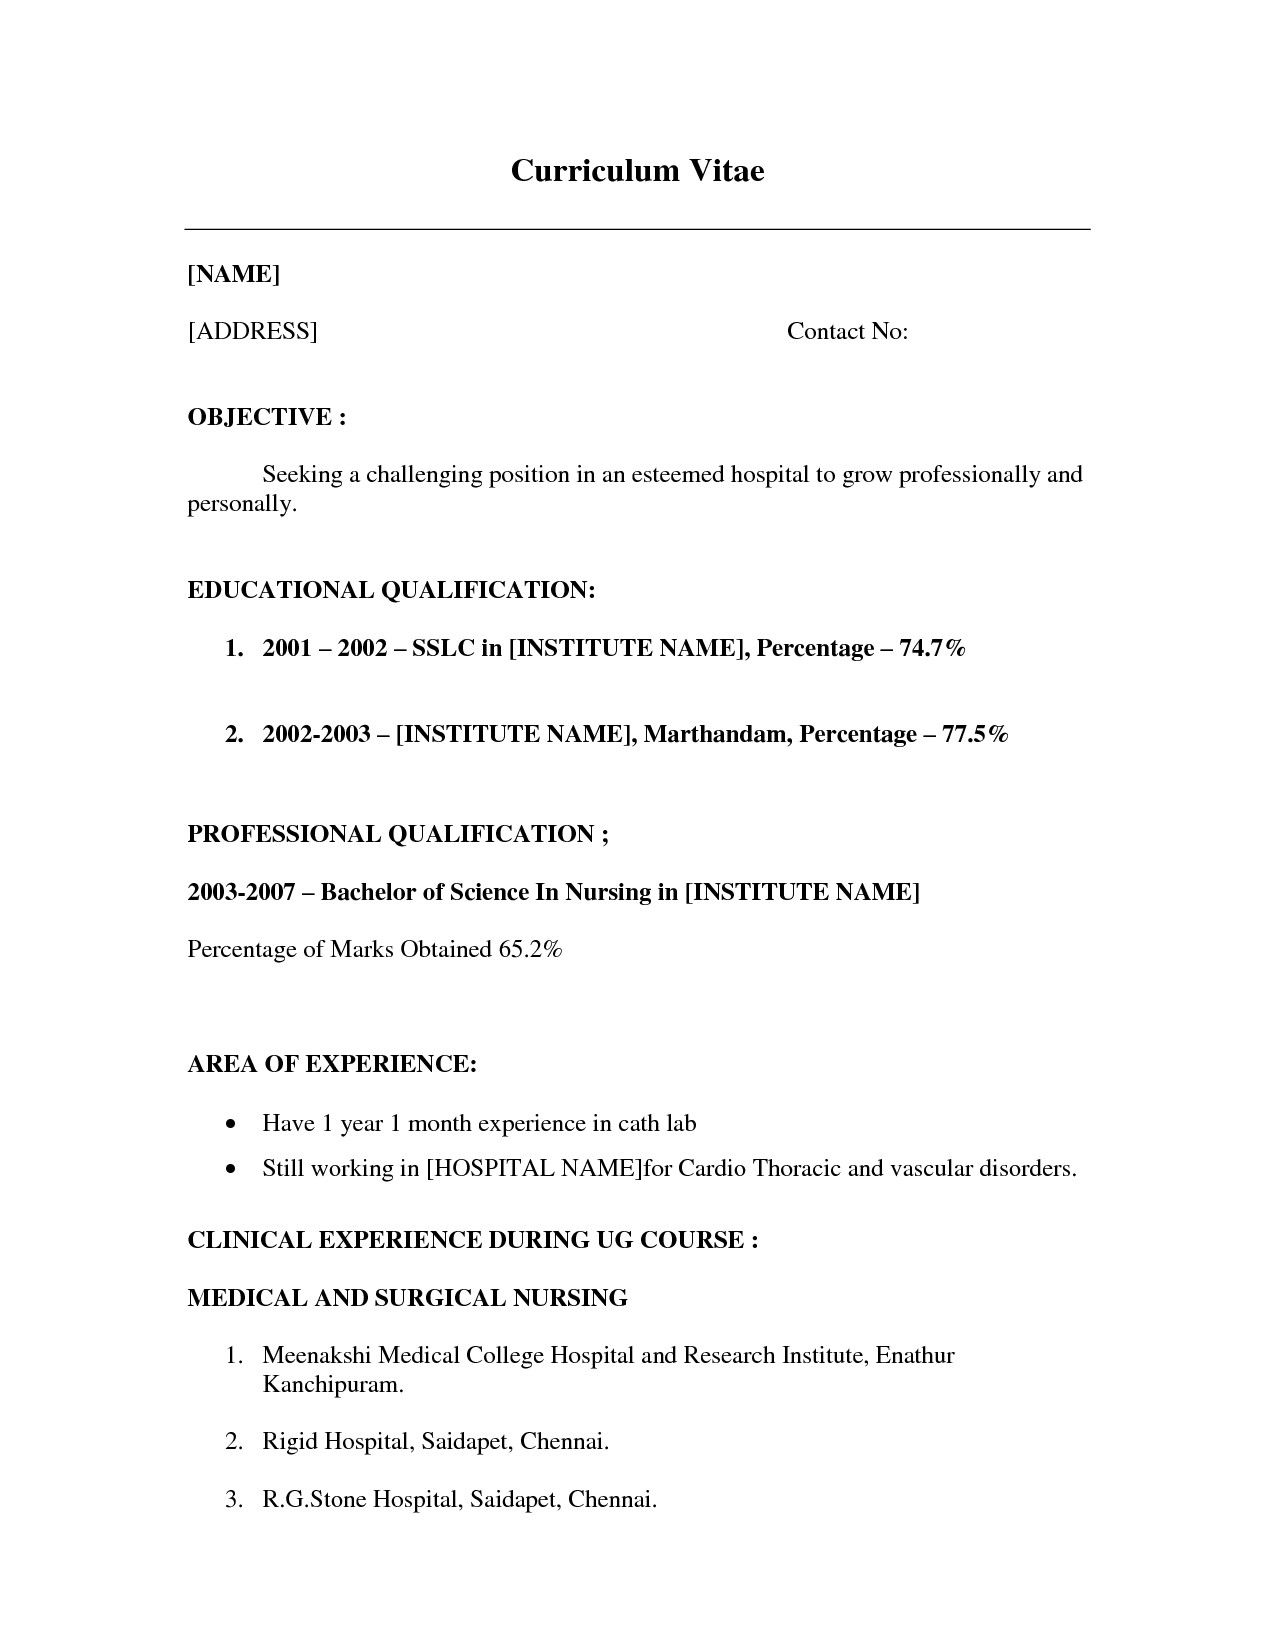 Resume Examples Little Work Experience Resume Templates Job Resume Examples Job Resume Samples Resume Examples